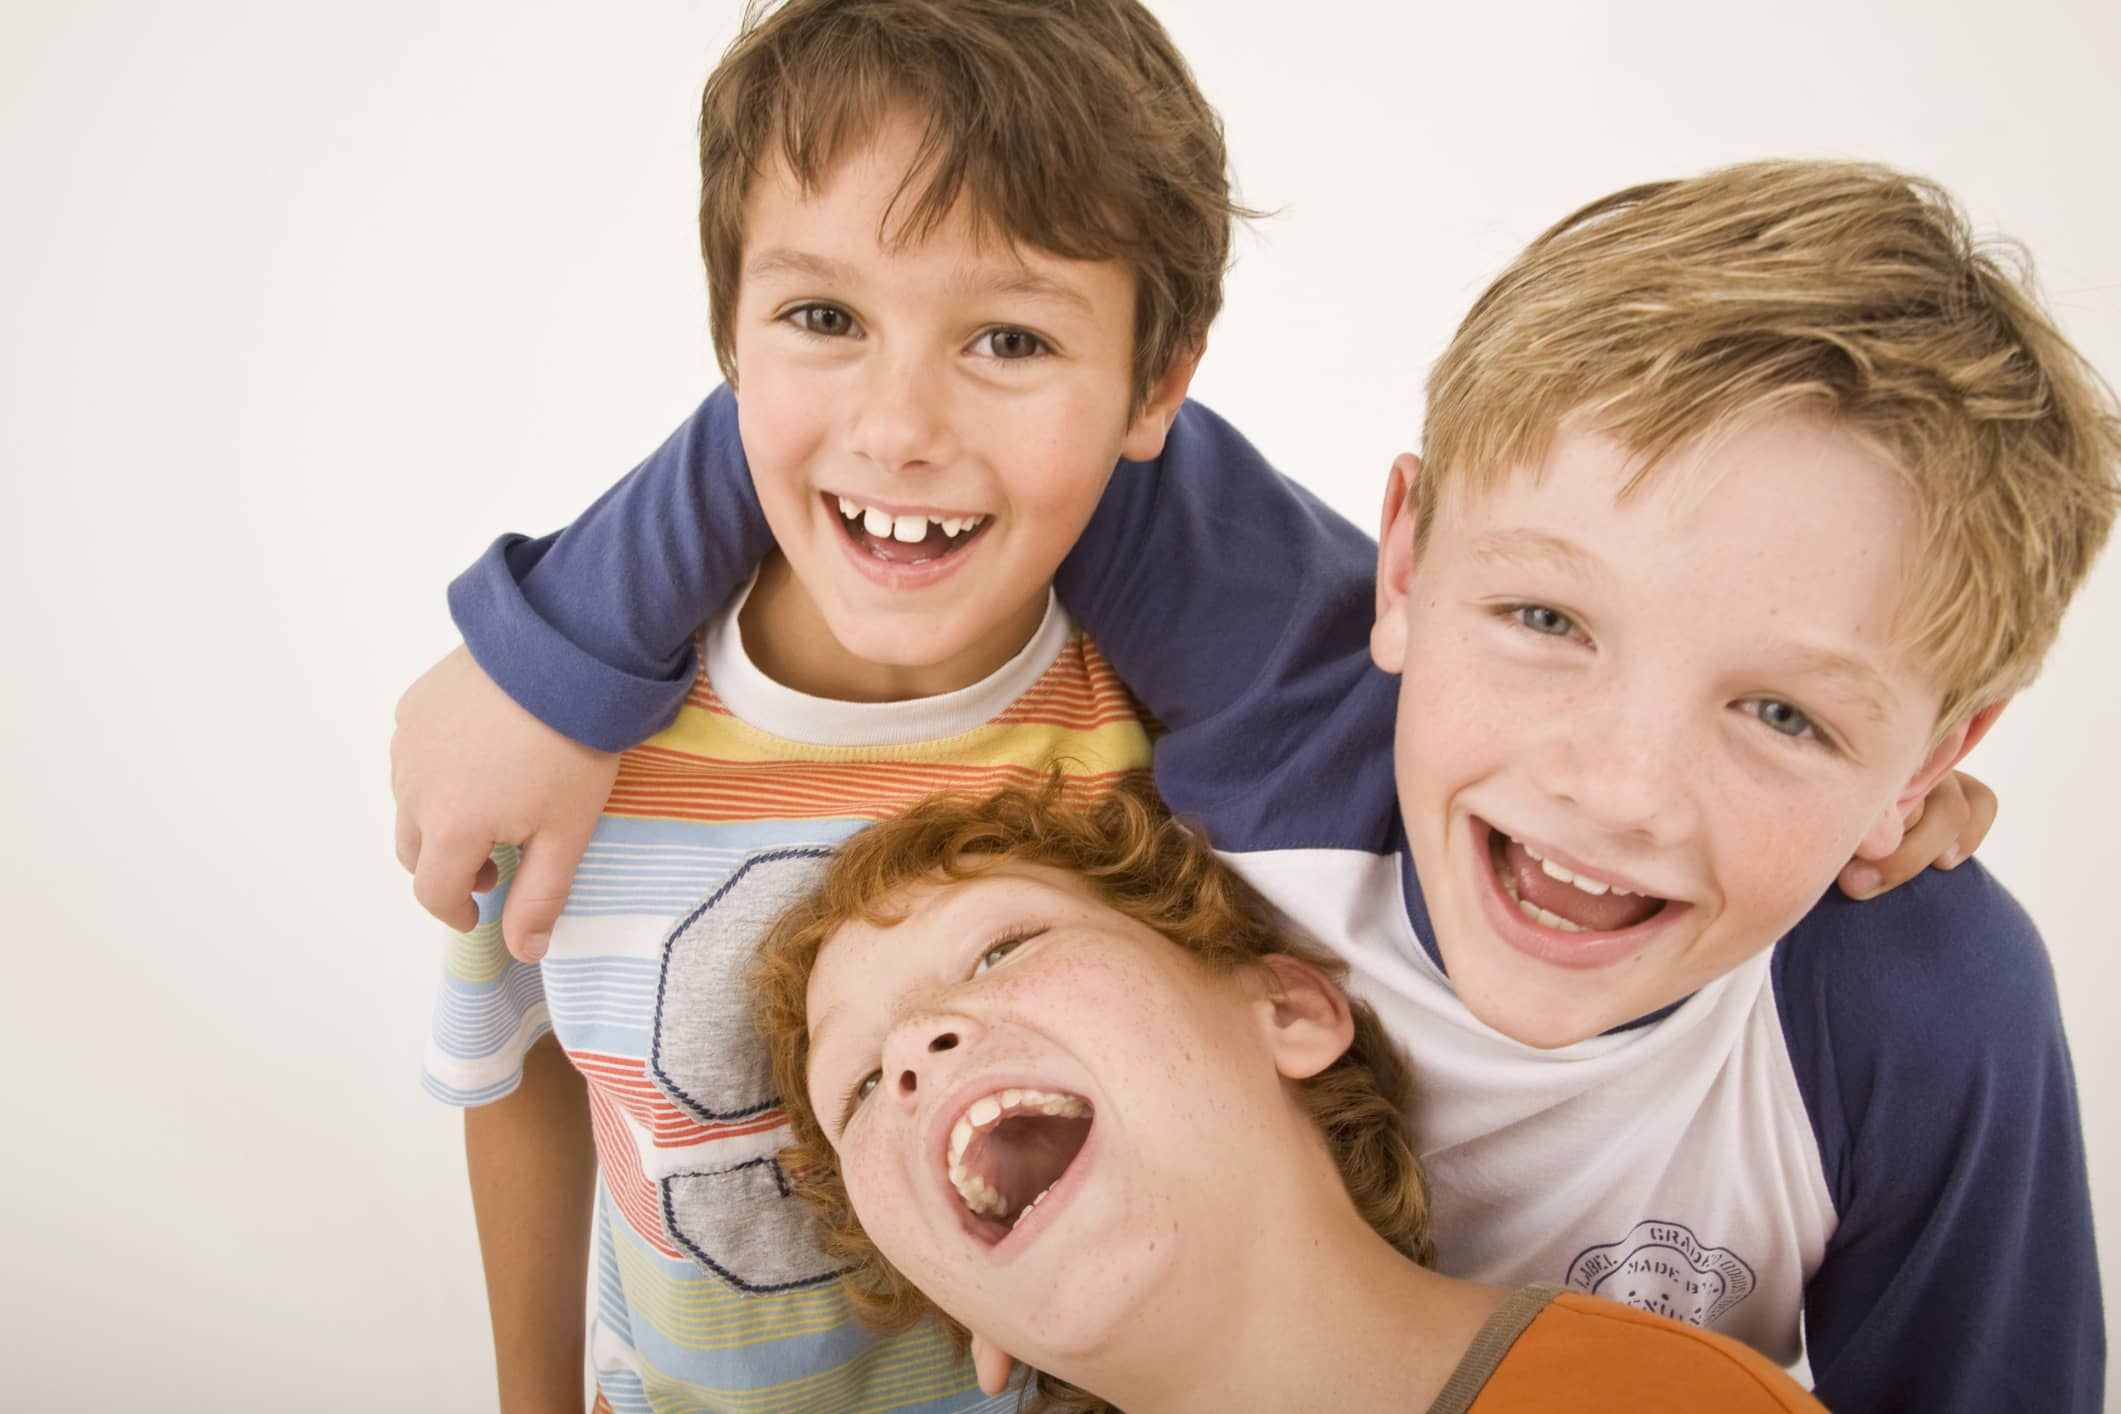 Danbury Dentistry Reveals 4 Ways Tooth Decay Harms Kids